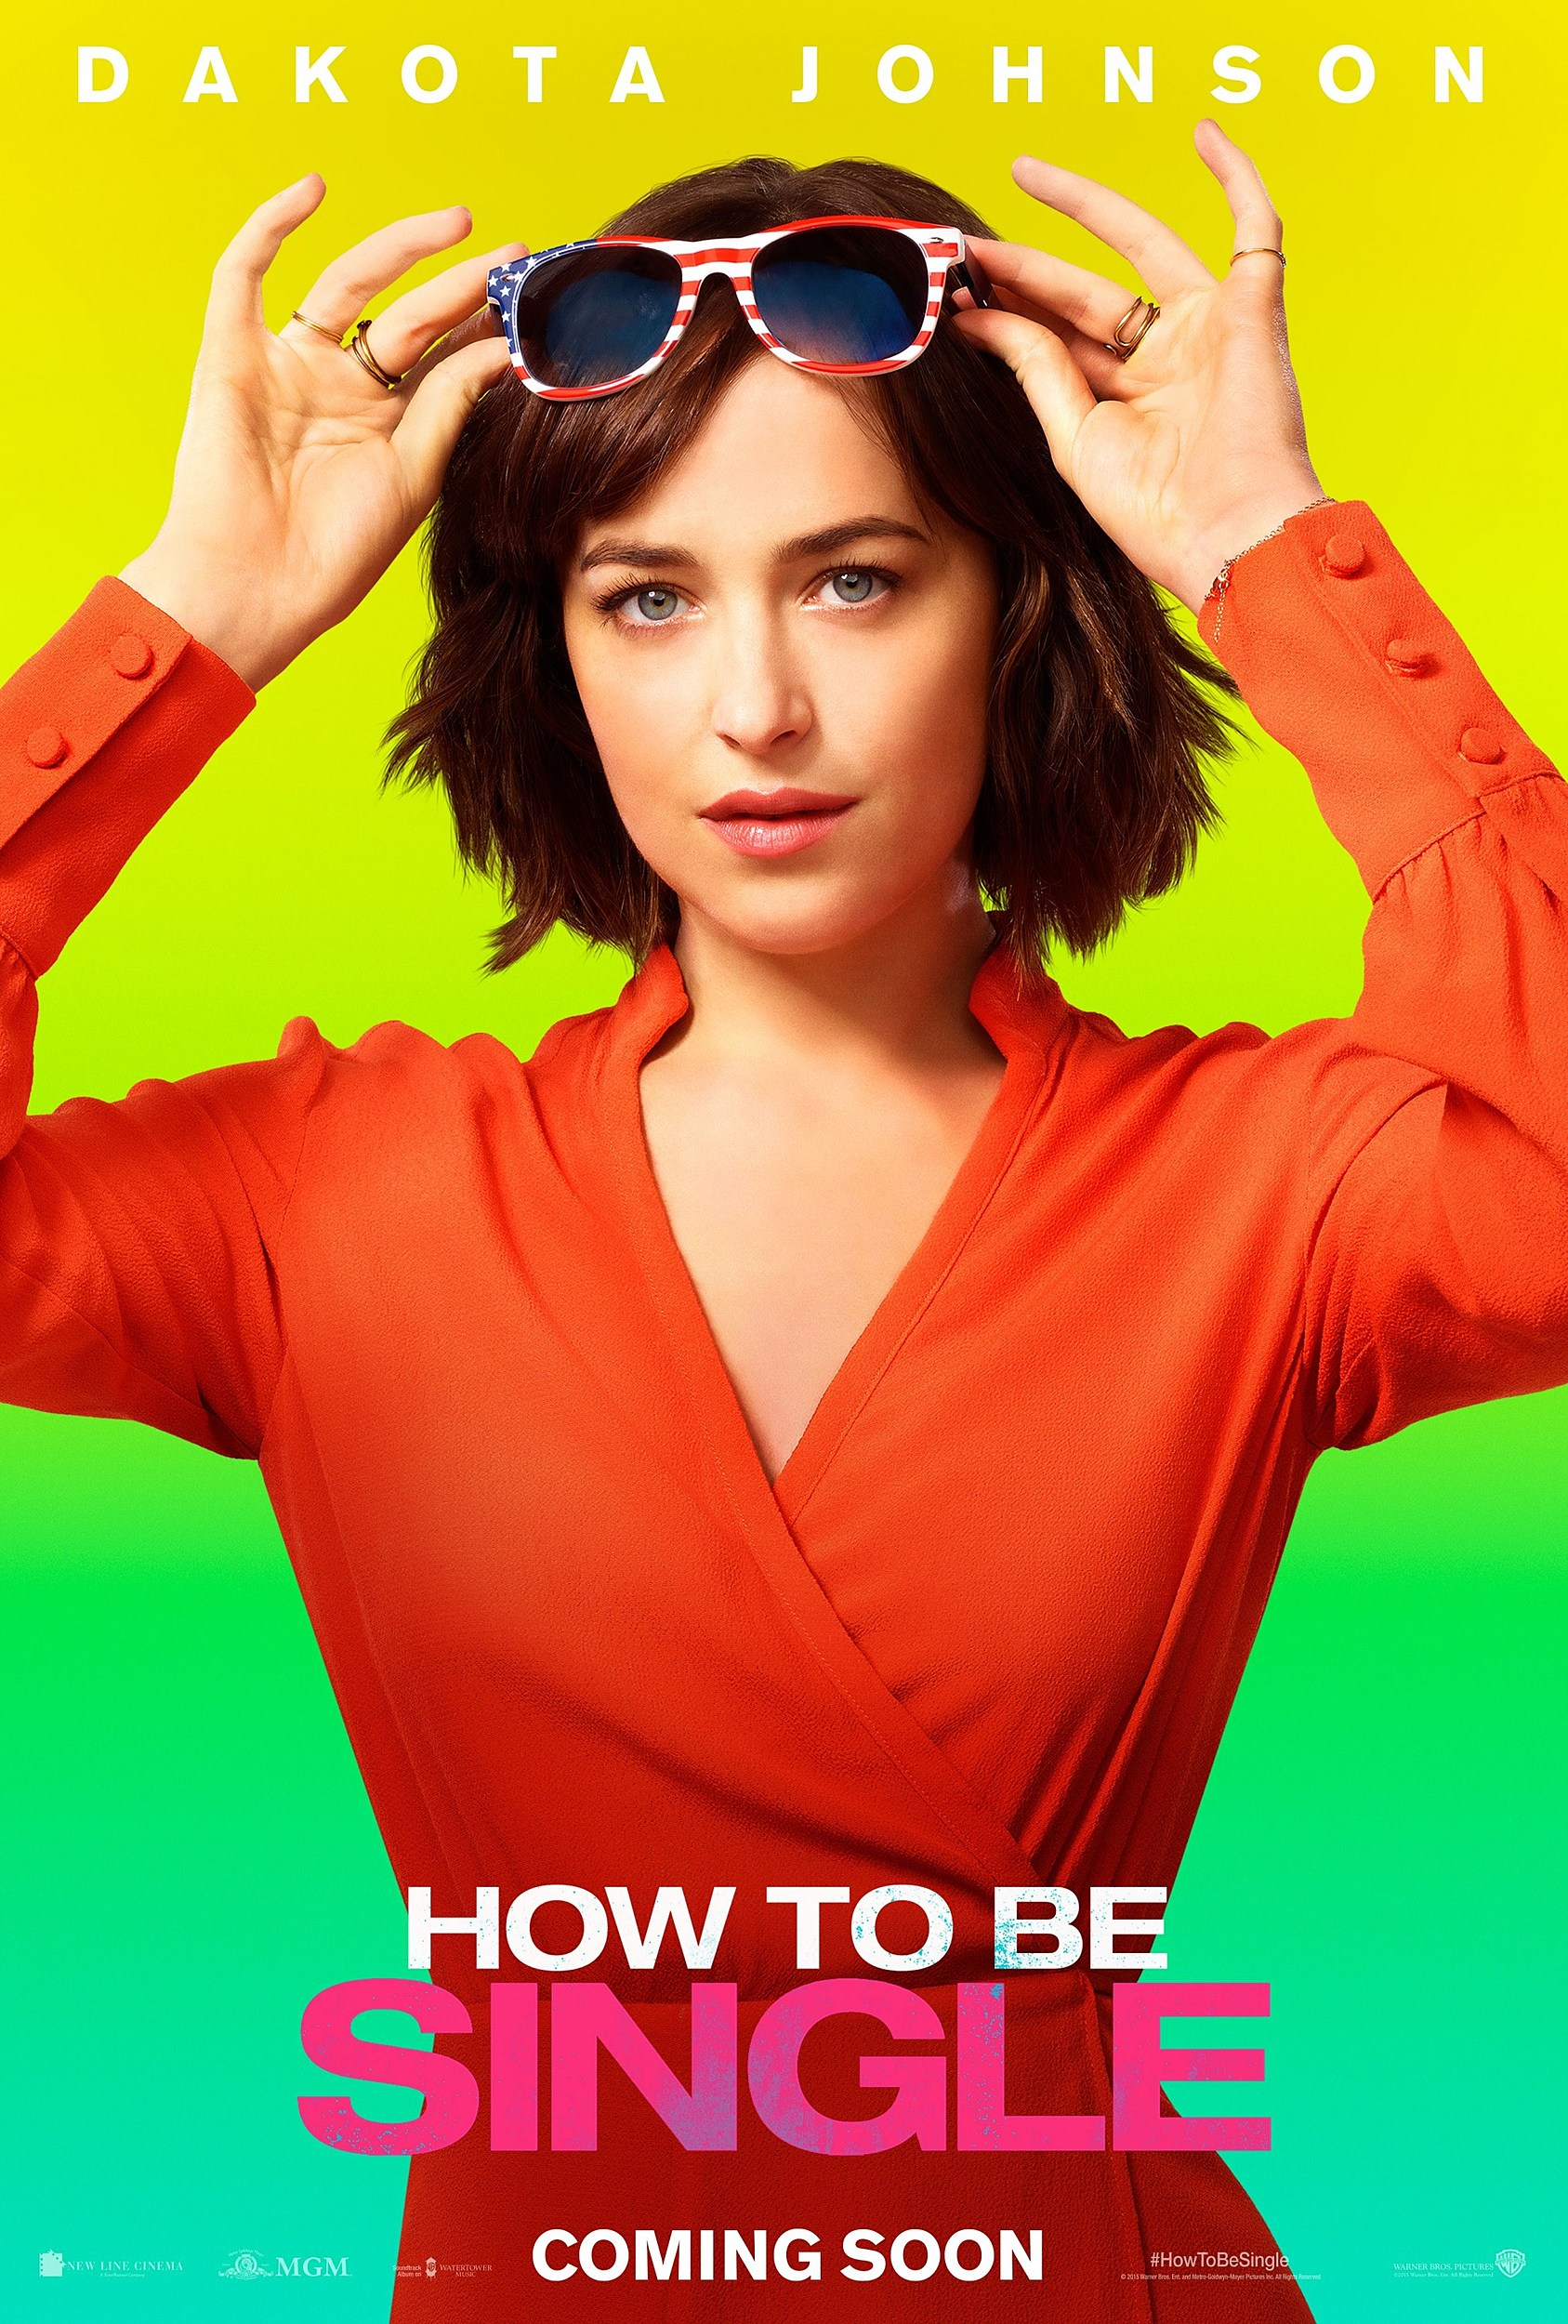 'how To Be Single' Review: Dakota Johnson's In An Empire State Of Mind